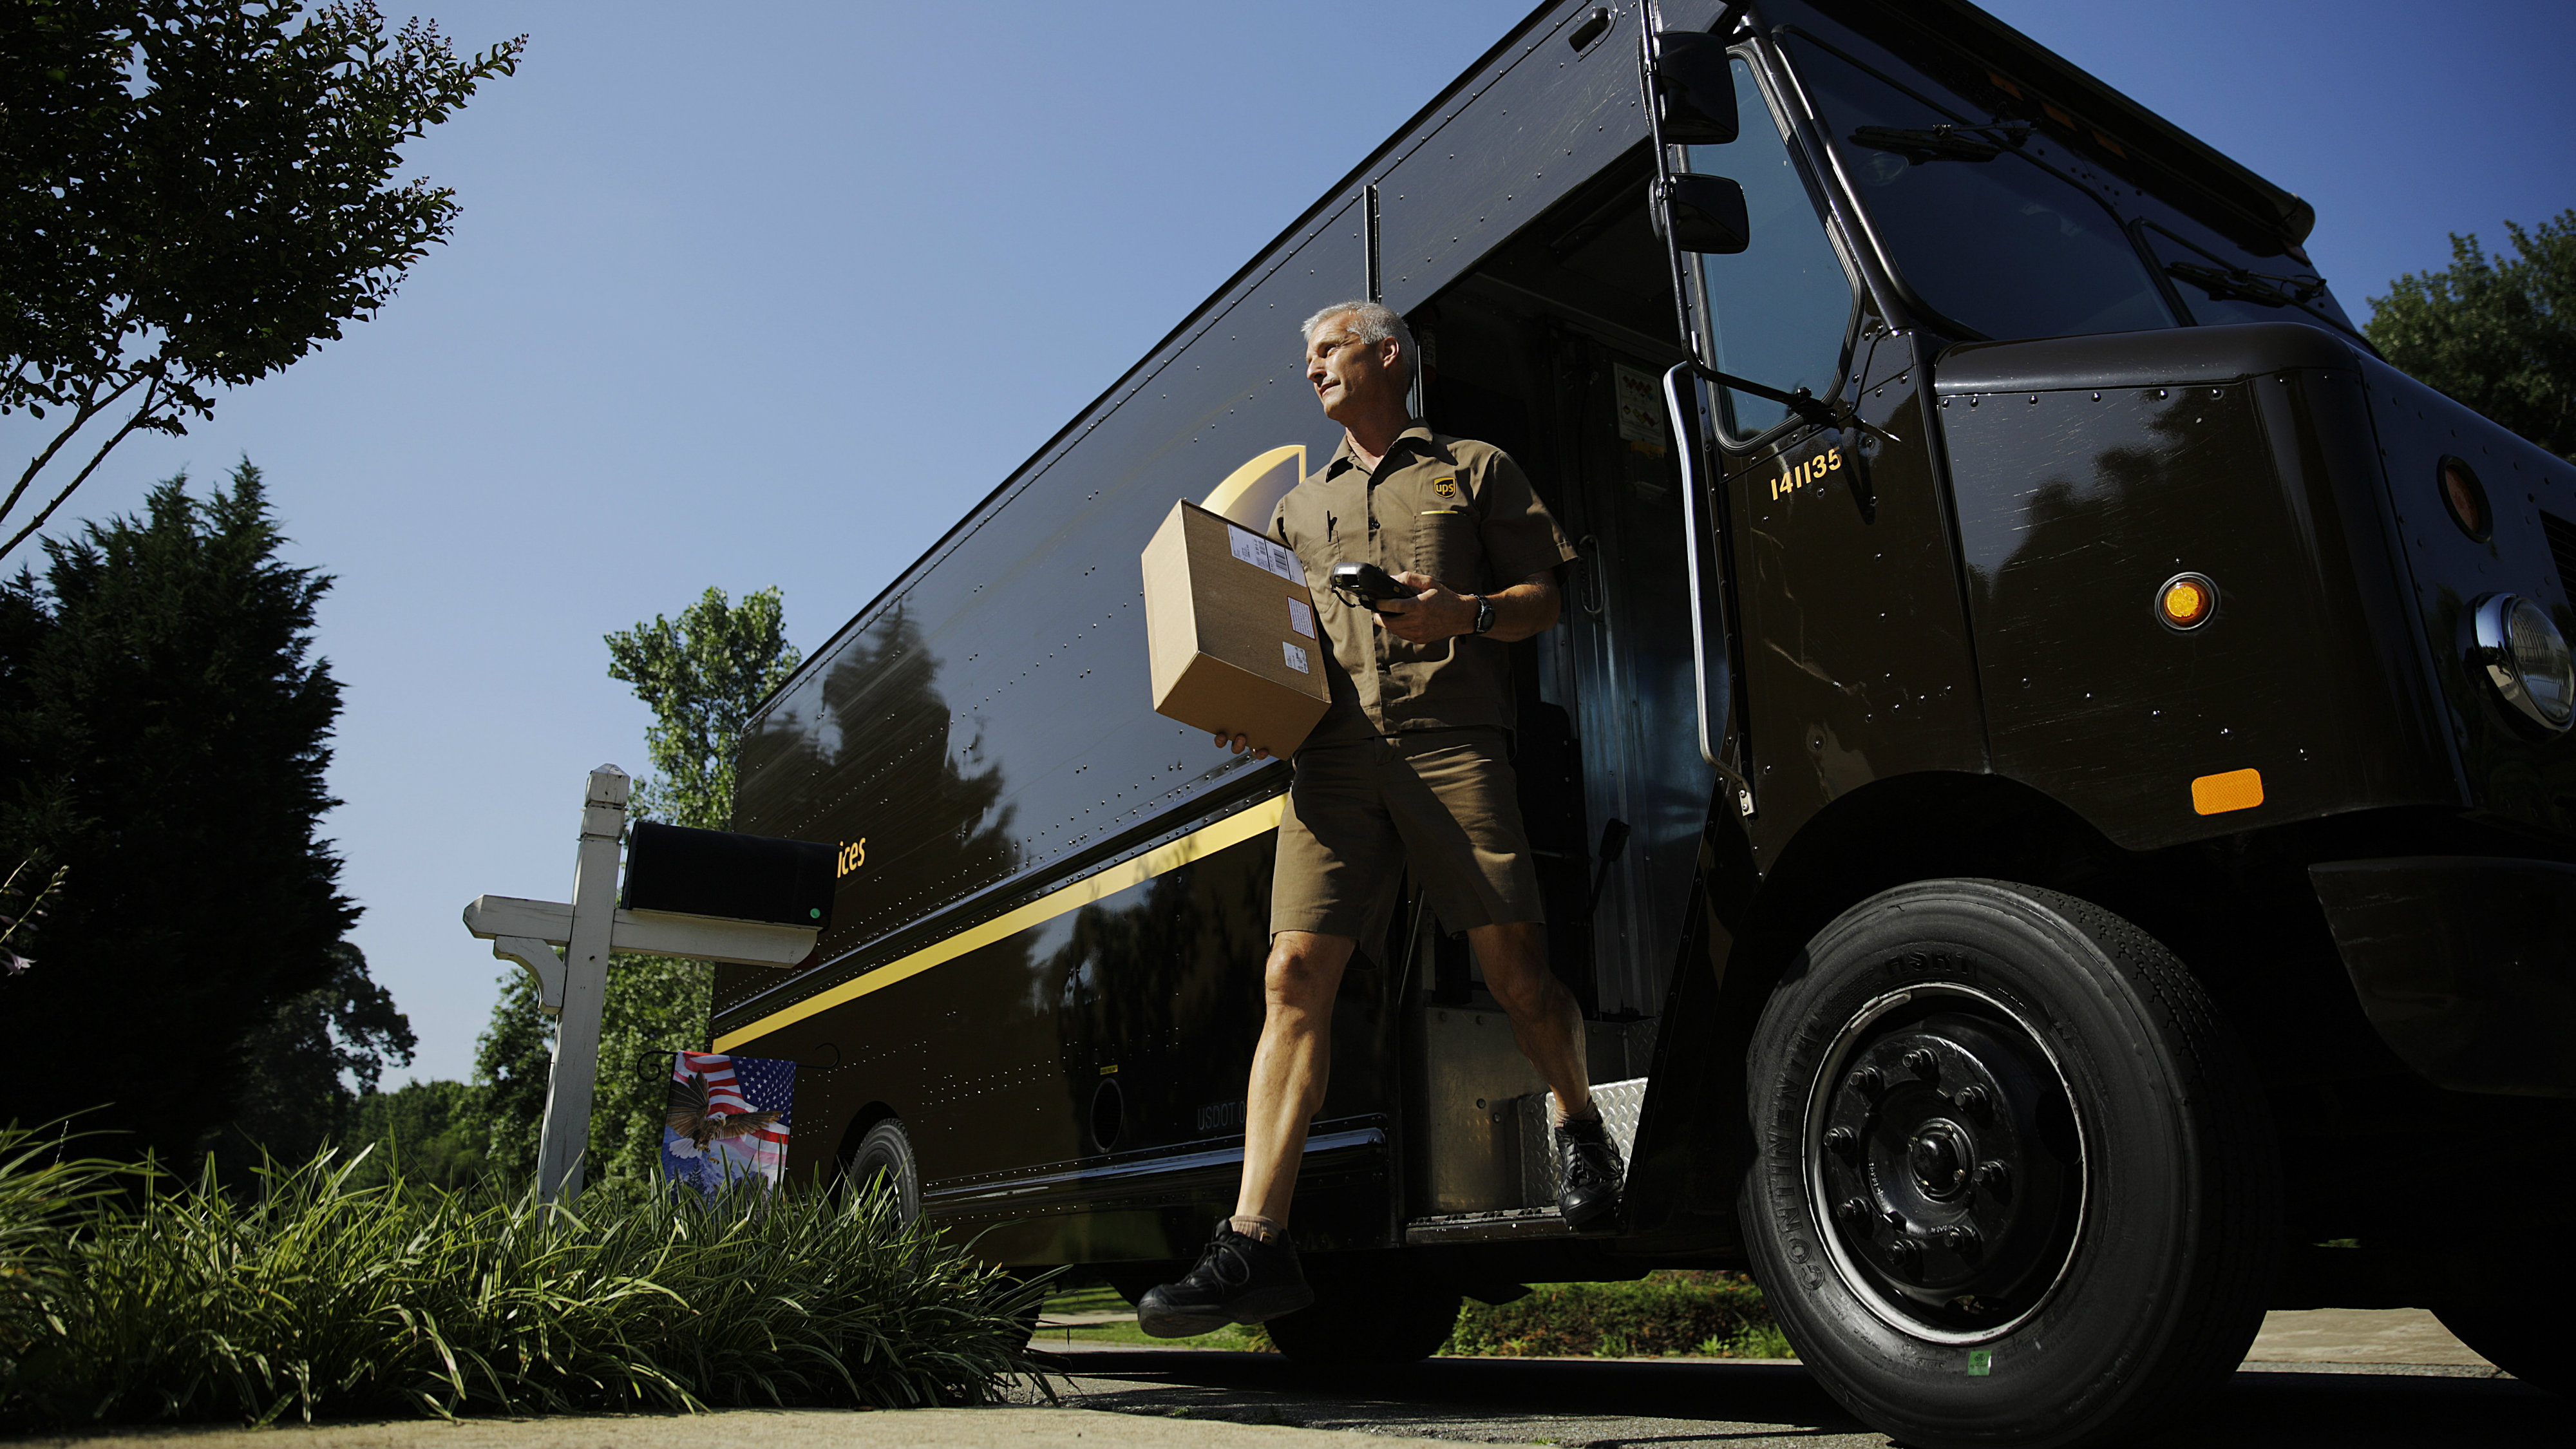 In this June 20, 2014 photo, United Parcel Service driver Marty Thompson steps off a truck while making a delivery in Cumming, Ga. (AP Photo/David Goldman)